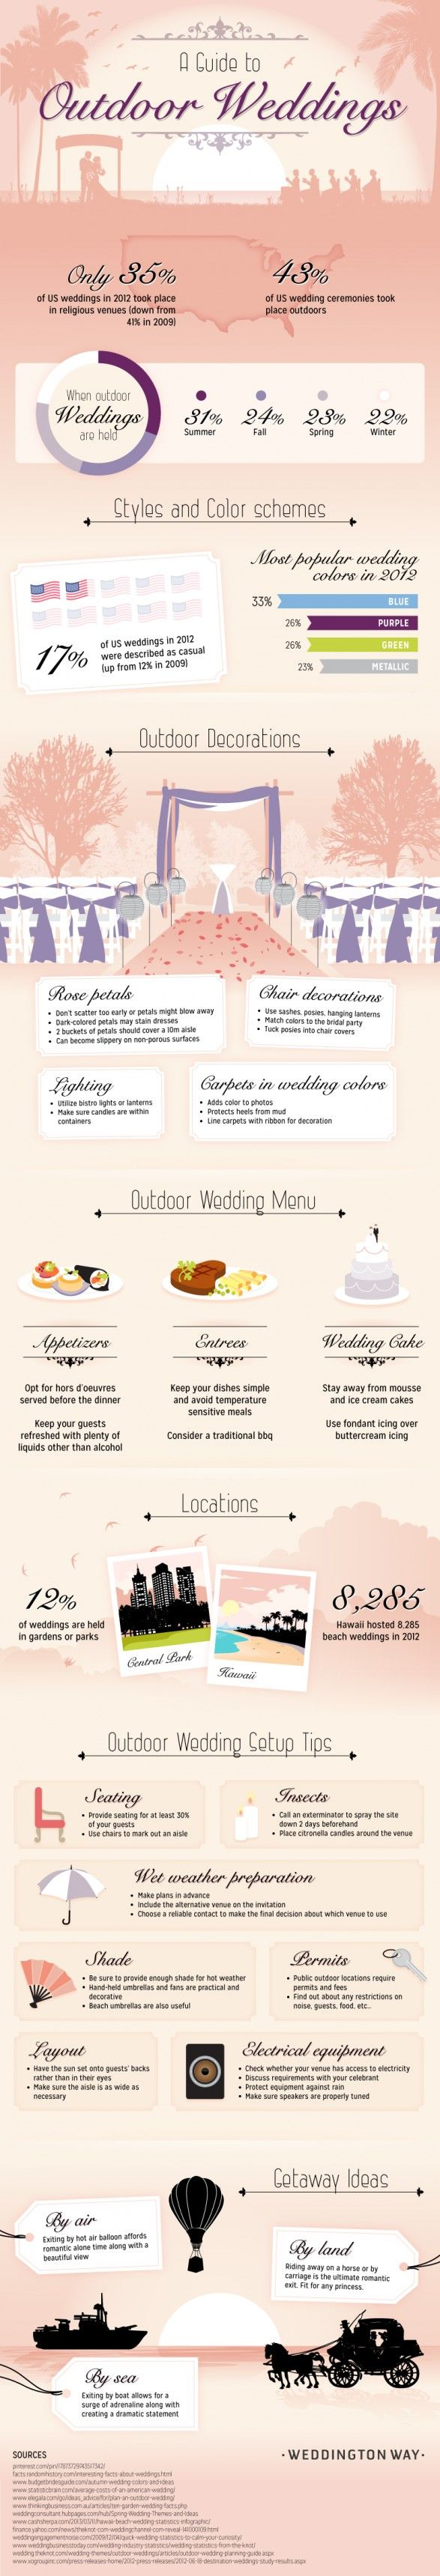 wedding-planning-tips-4-01212015-ky